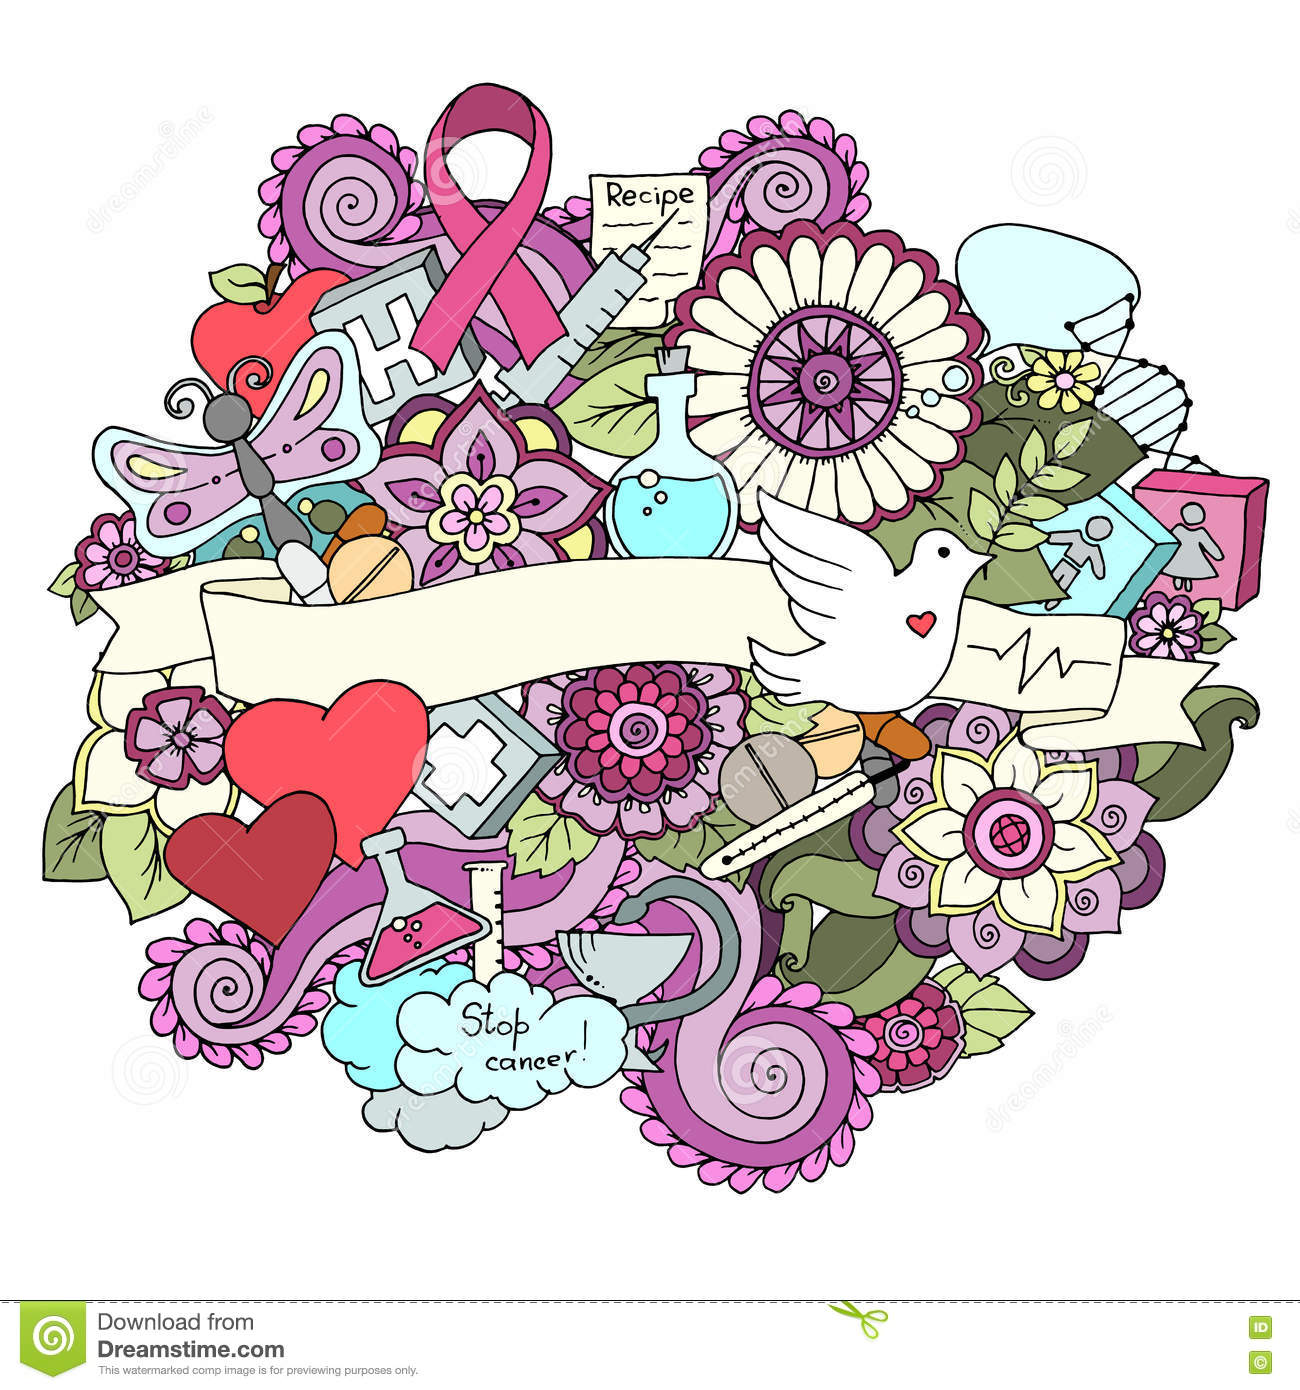 Global collaboration breast cancer awareness month colorful doodle  illustration. Medical Background with ribbon 5e054ddac